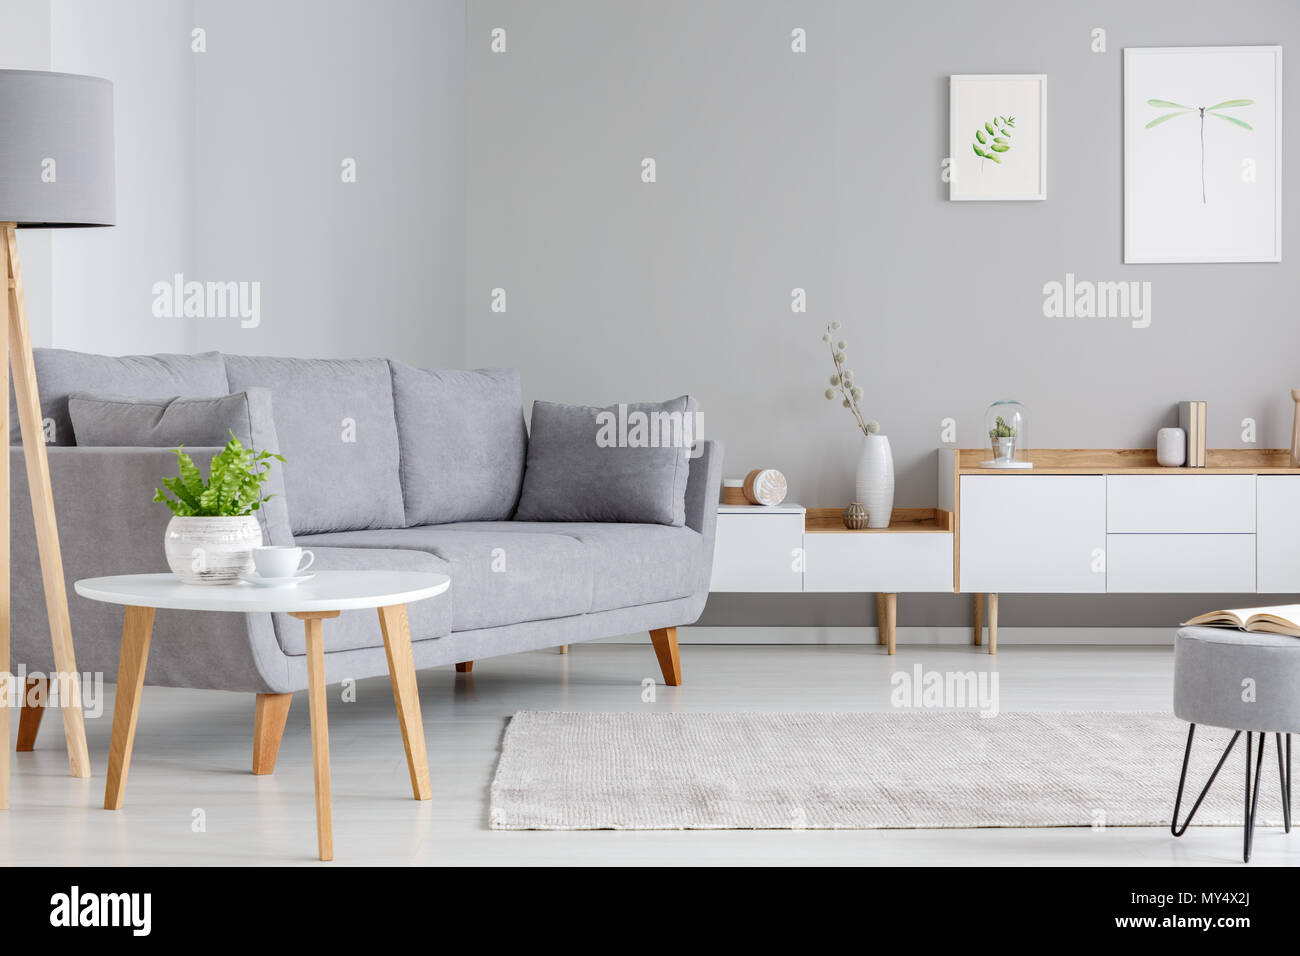 Sofa Next Grey Table Next To Grey Sofa In Scandi Living Room Interior With